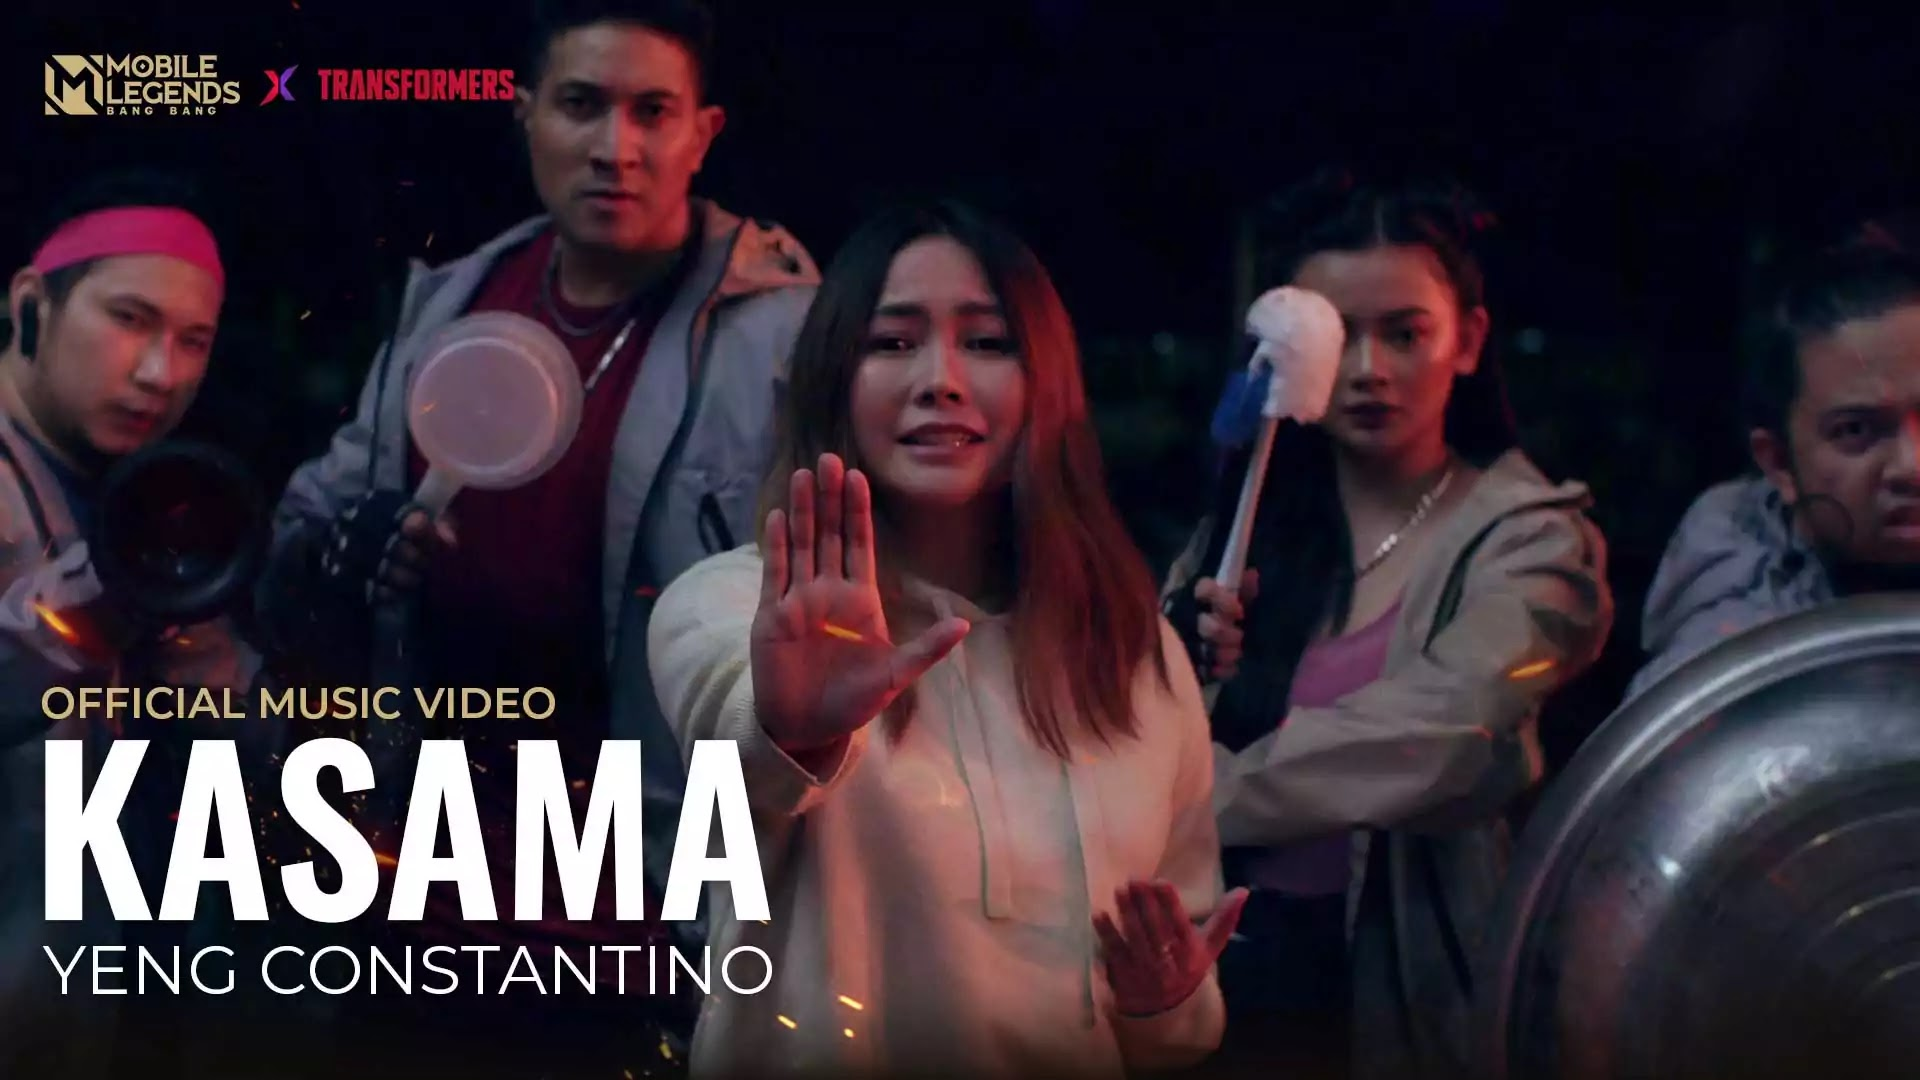 Yeng Constantino - Kasama (Official Music Video)